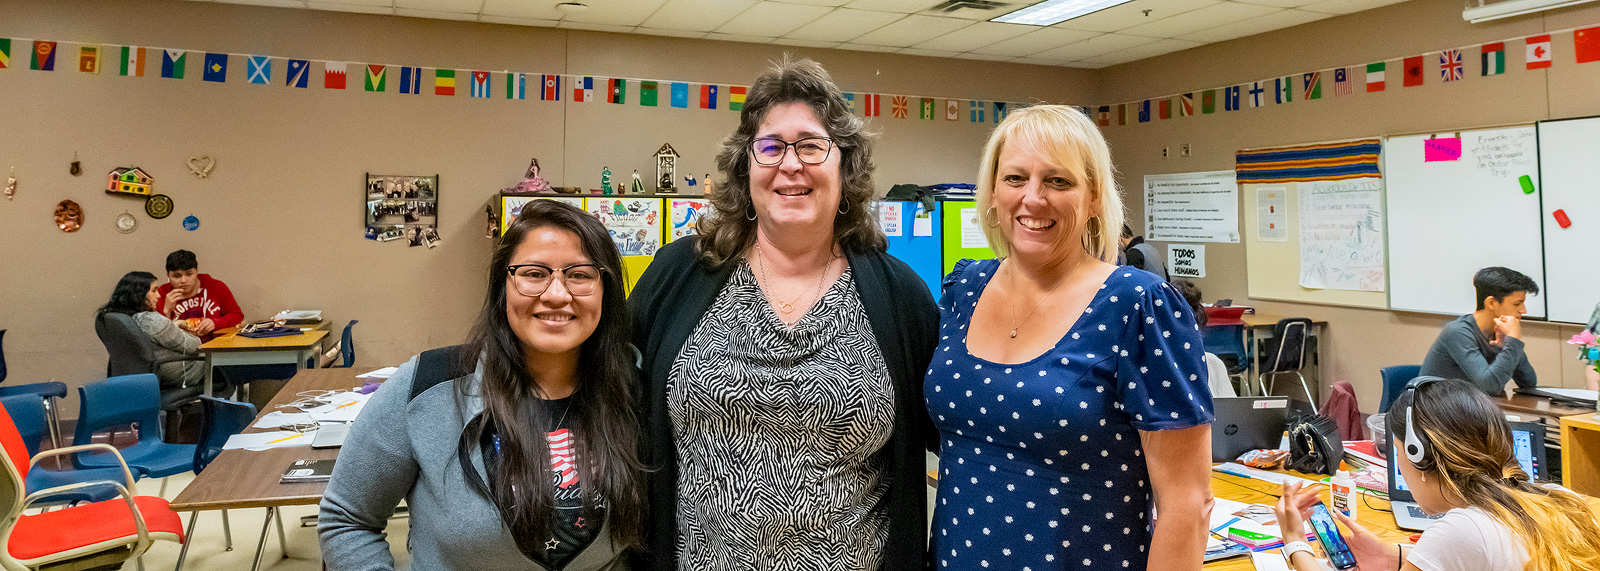 Diana Bernal-Canseco, Charo Ledon, and Liz Sirman of Buenos Vecinos at YCHS